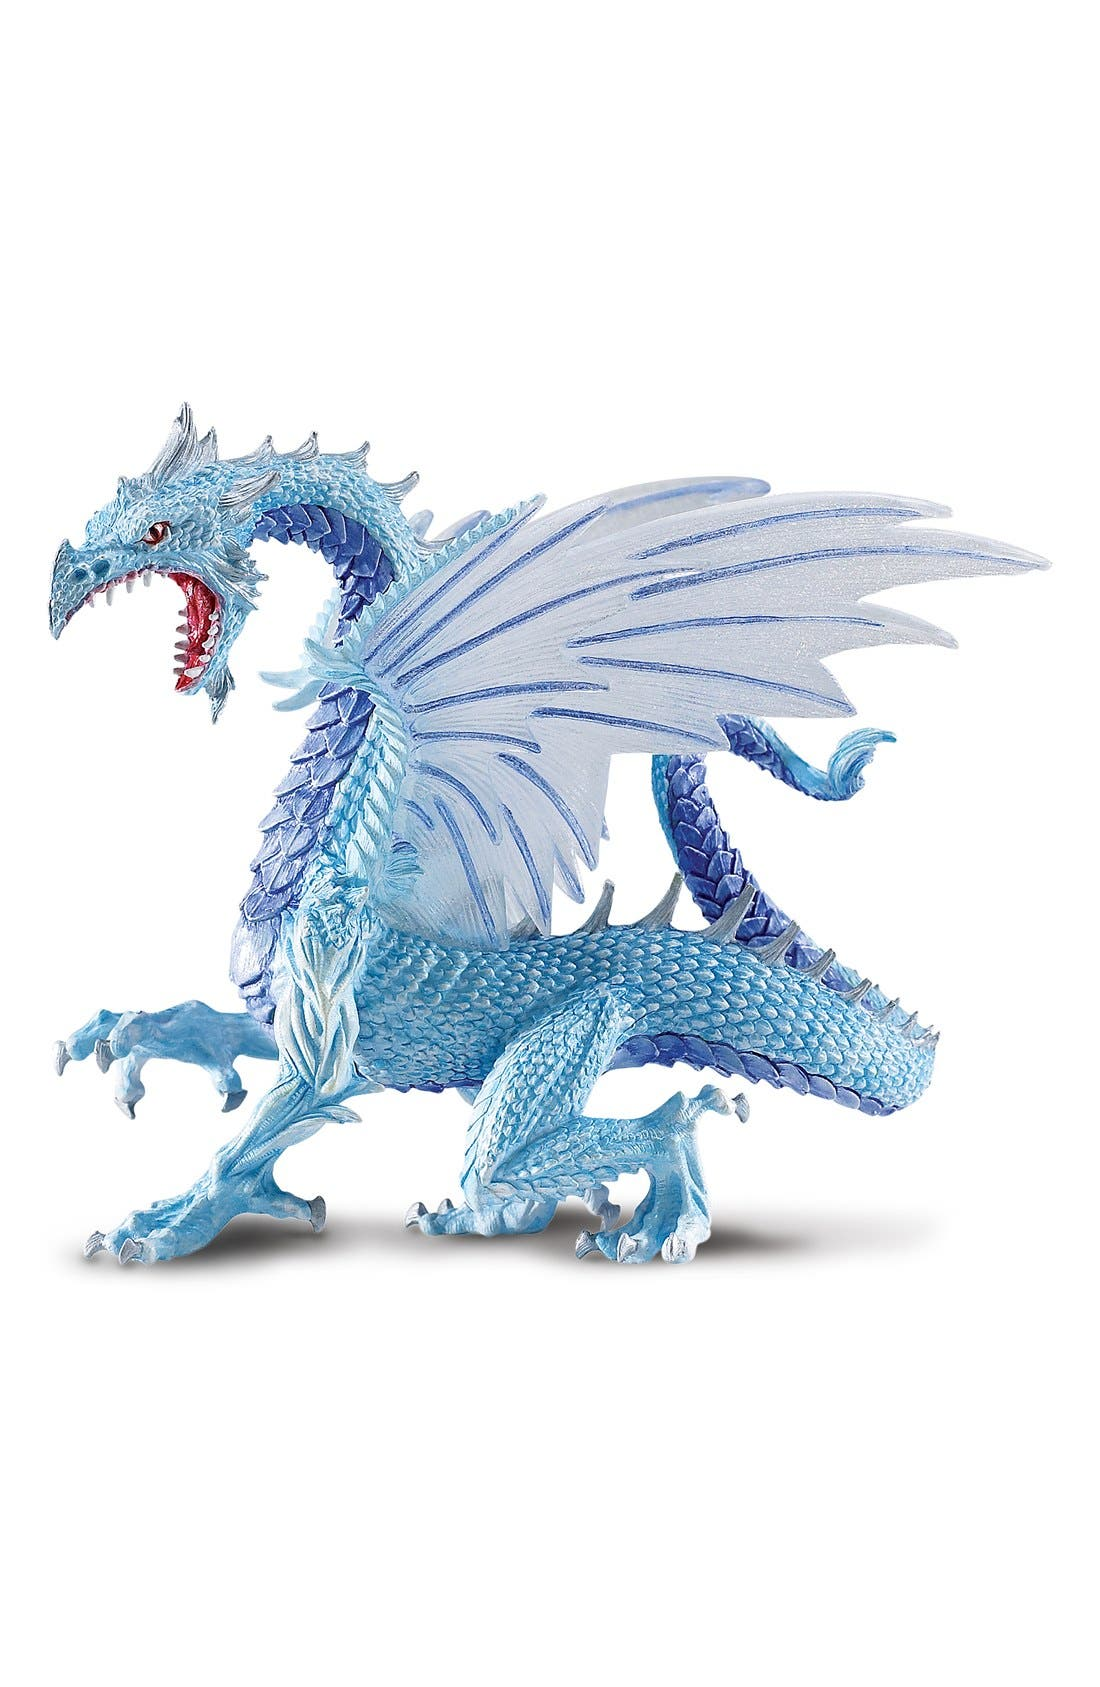 Ice Dragon Figurine,                             Main thumbnail 1, color,                             No Color